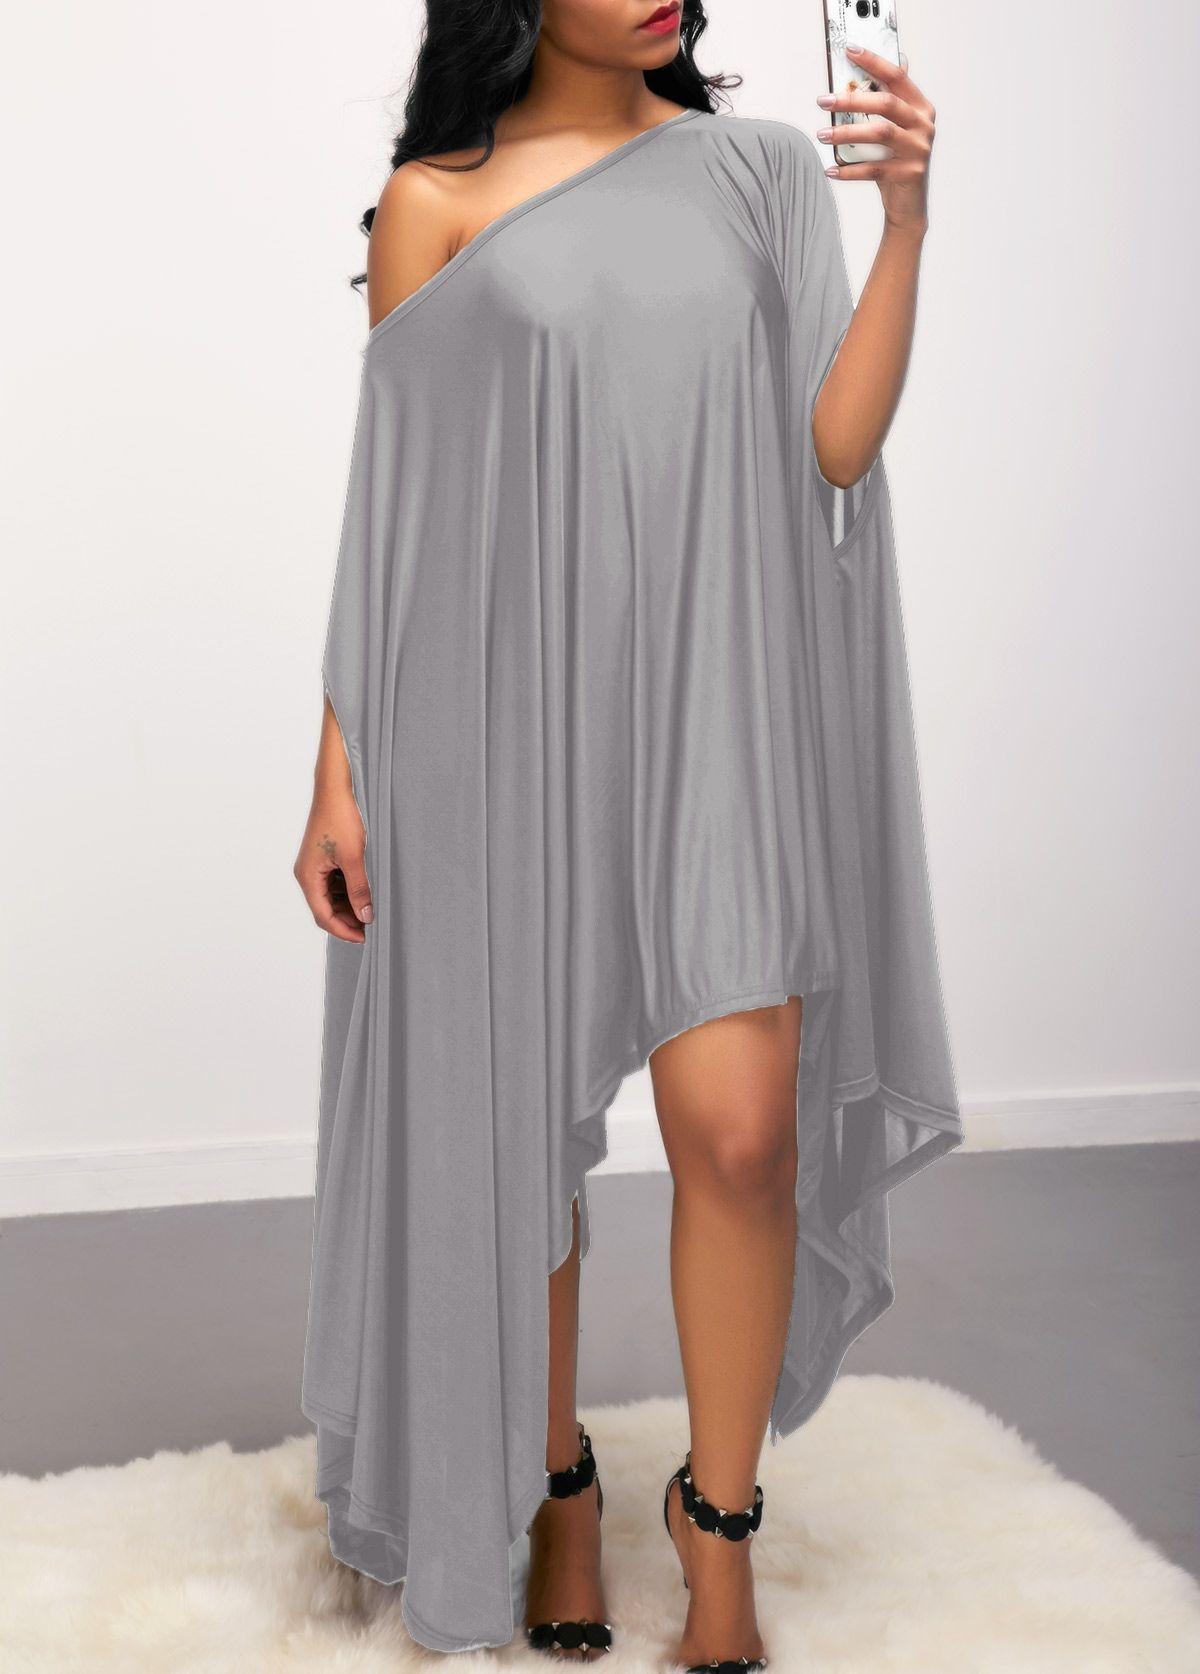 a91bcc548f5 Solid Grey Skew Neck Asymmetric Hem Dress on sale only US 26.85 now ...